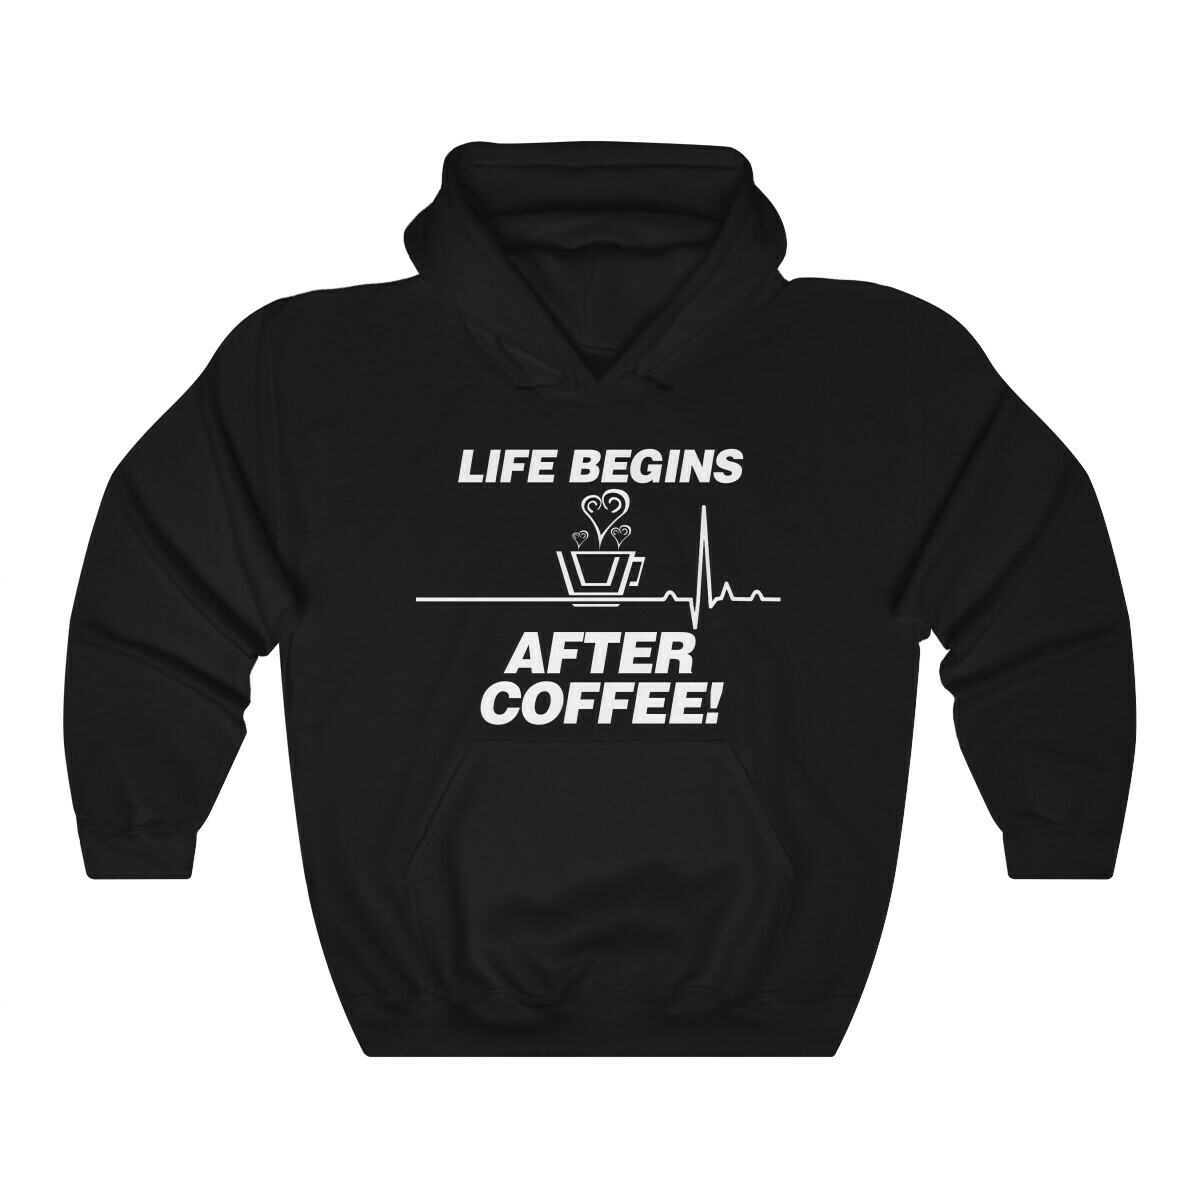 *Life Begins After Coffee - 18500